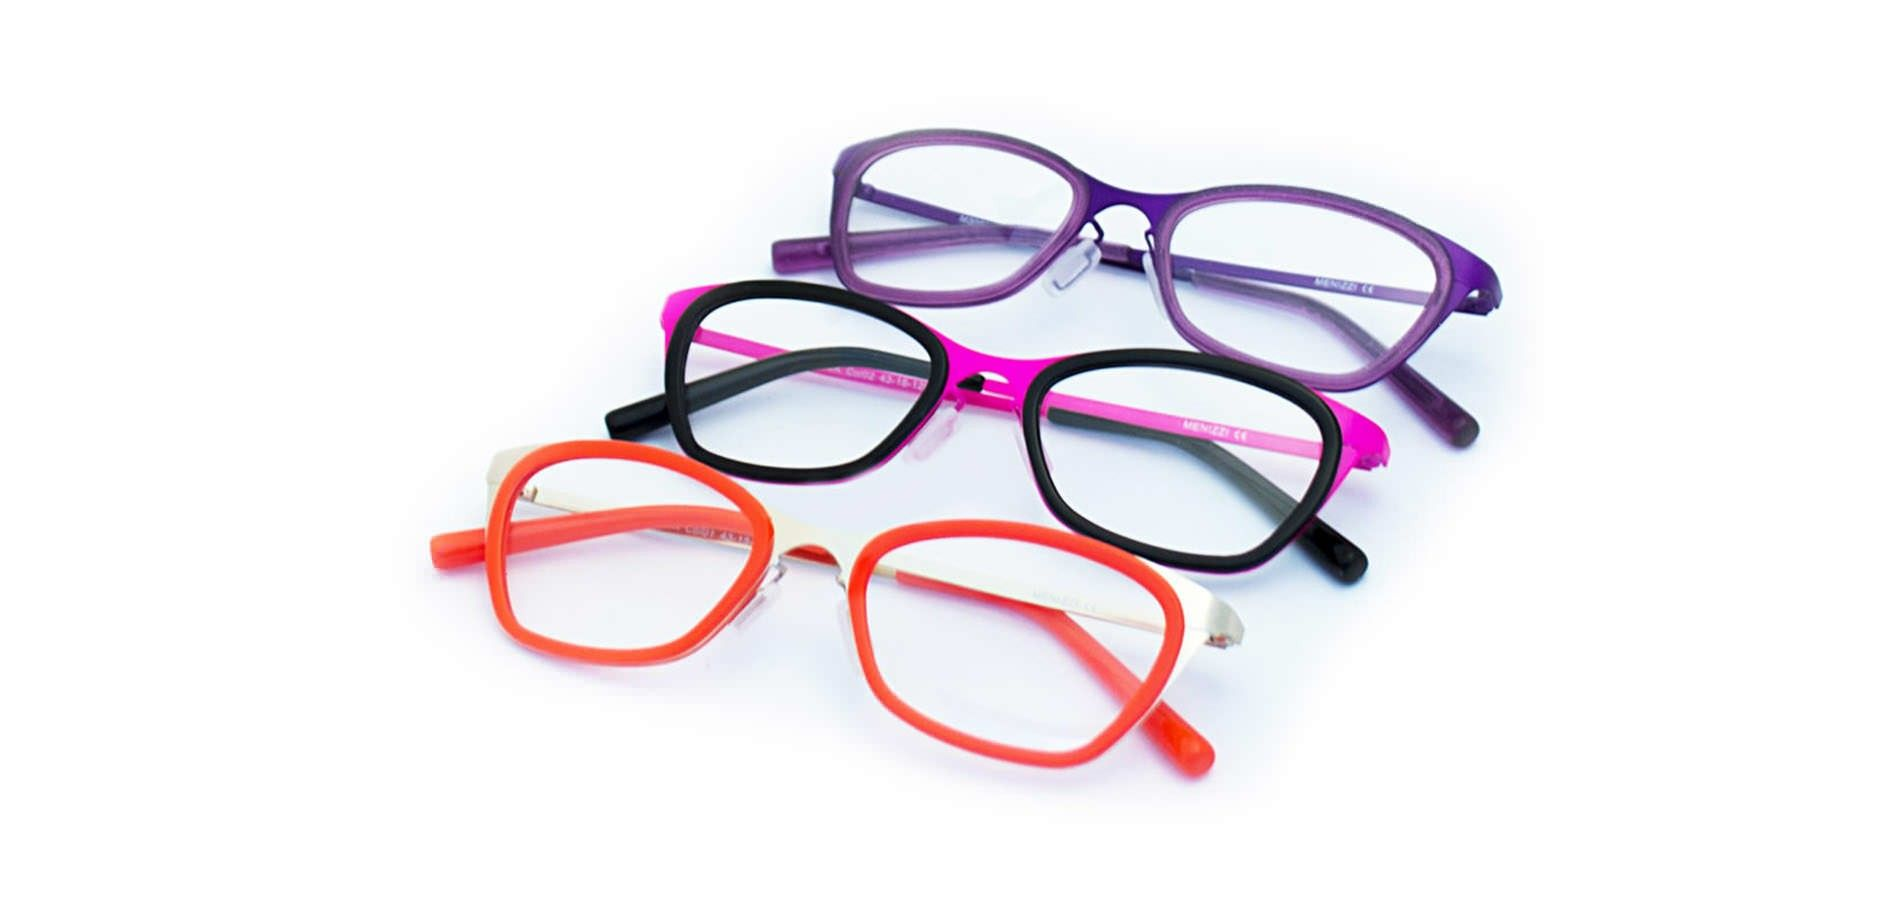 The Menizzi collection makes petite glasses for smaller faces and ...